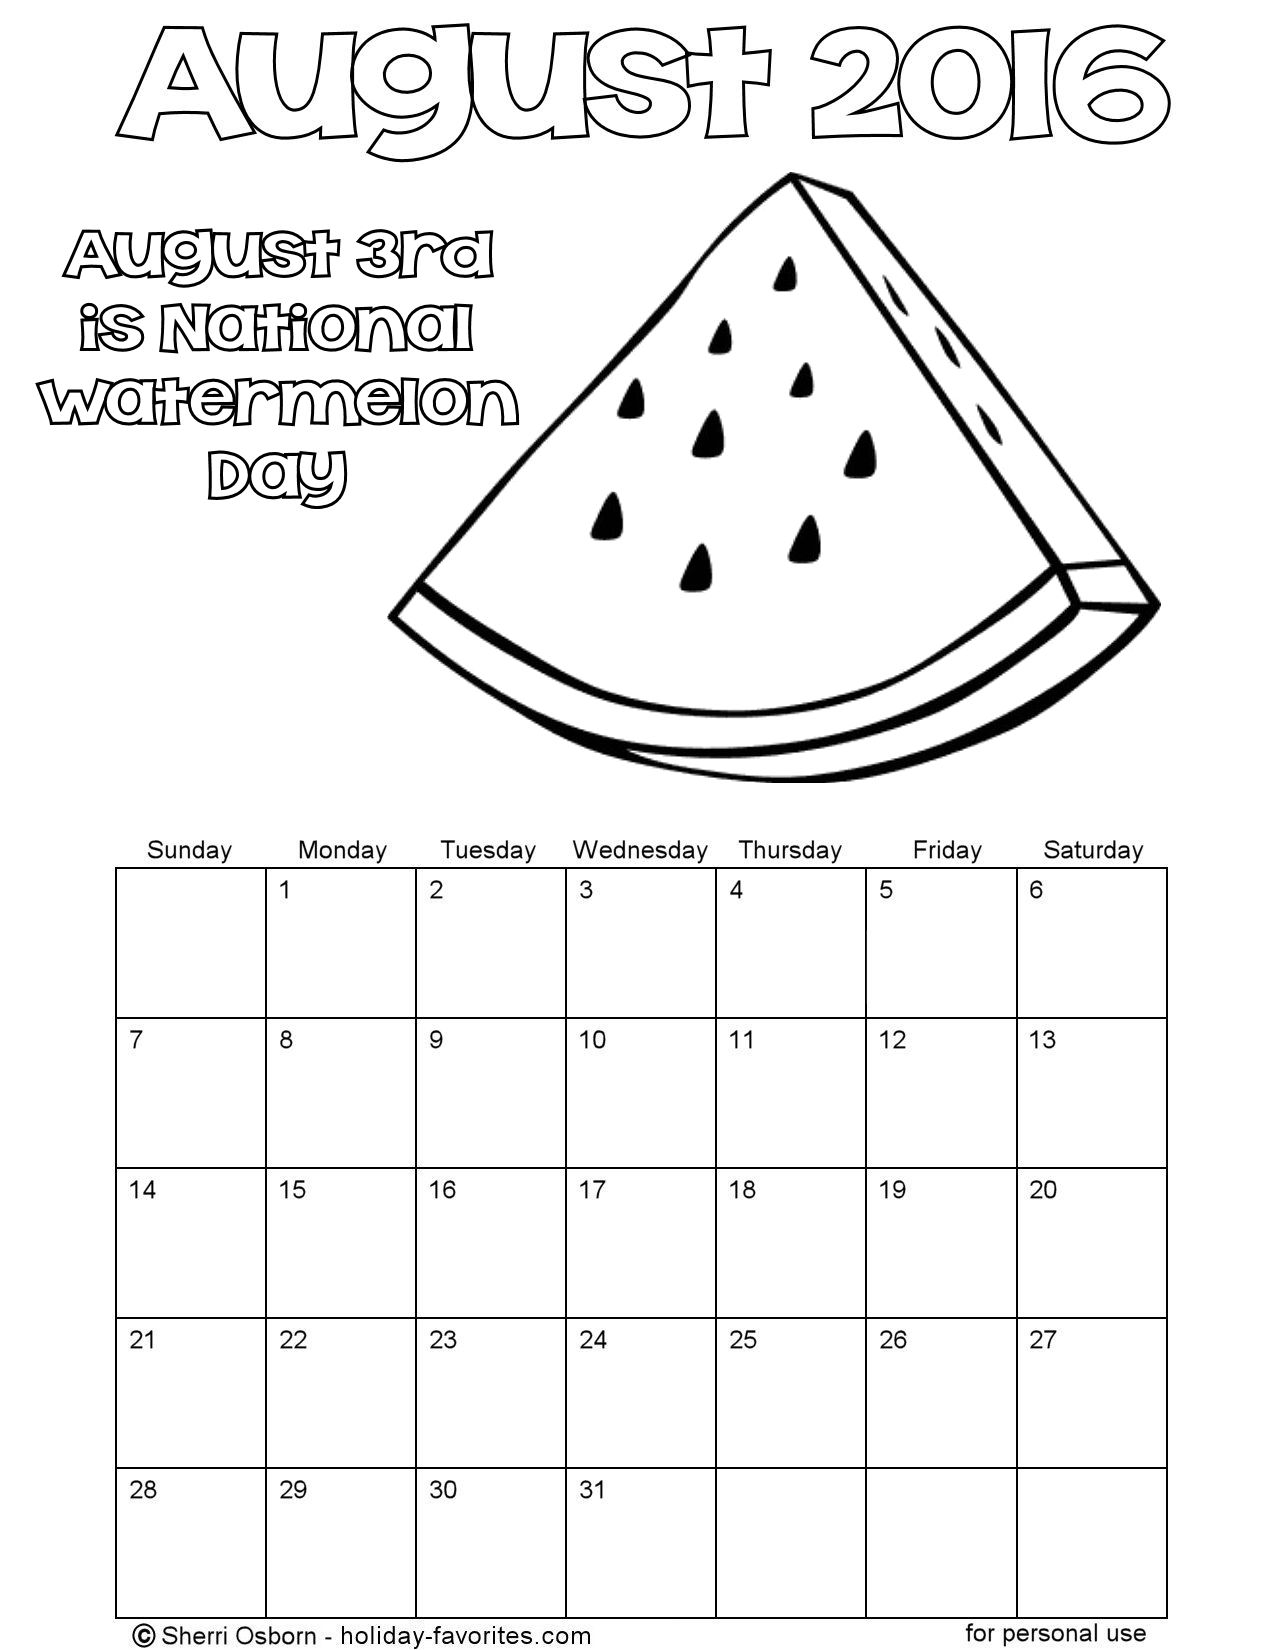 Printable Watermelon Coloring Calendar for August